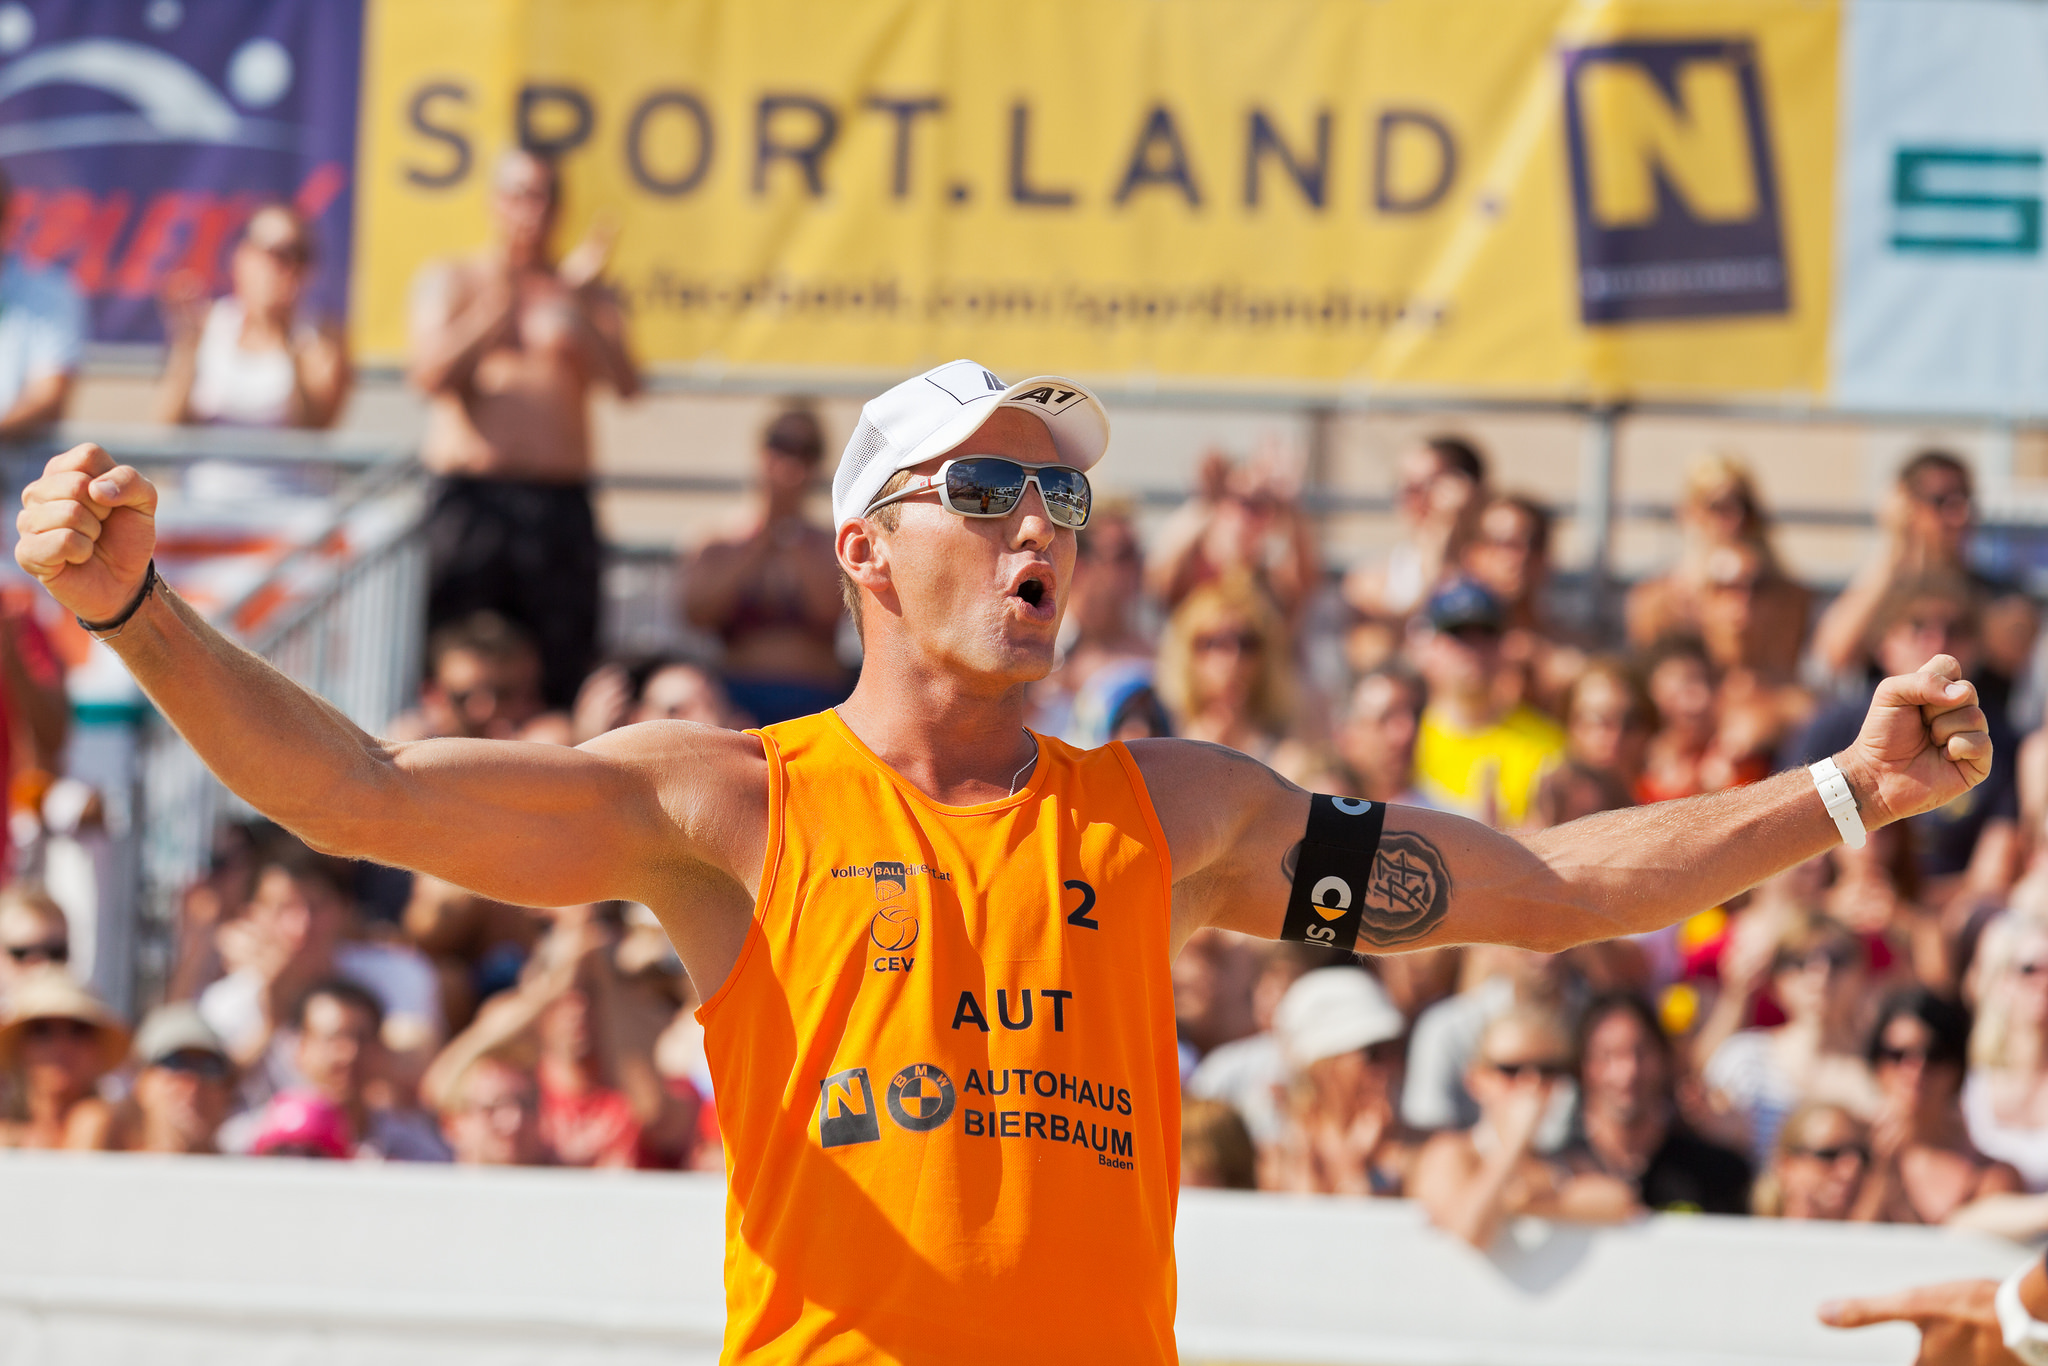 Foto: Beachvolleyball Baden